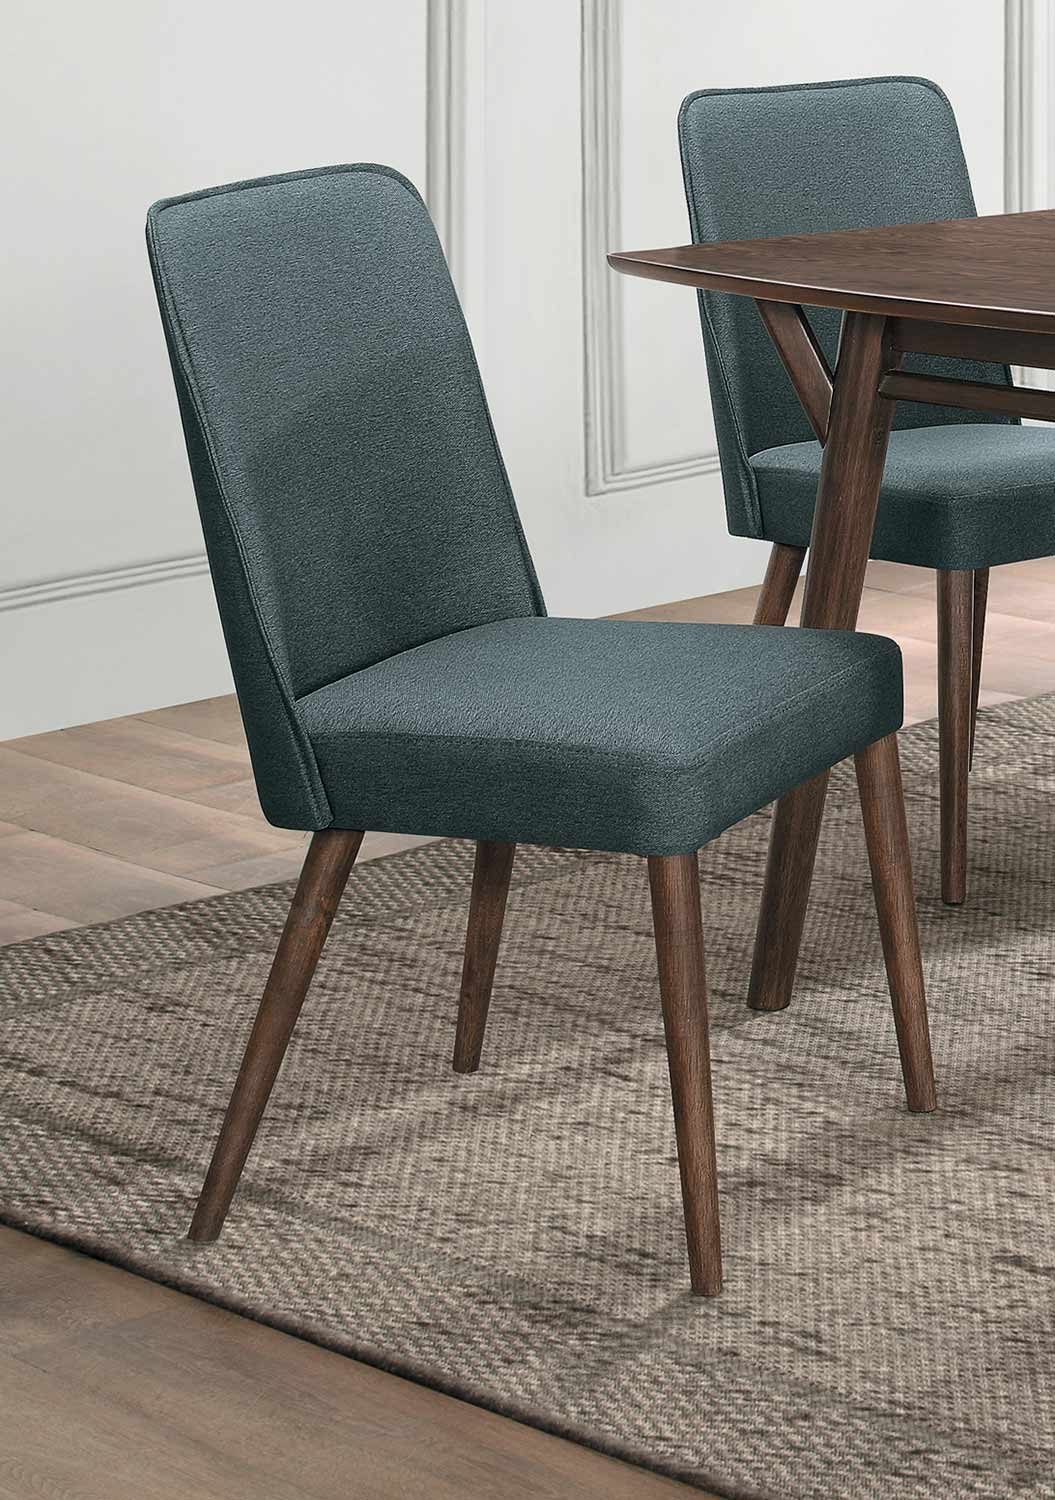 Homelegance Stratus Side Chair - Dark